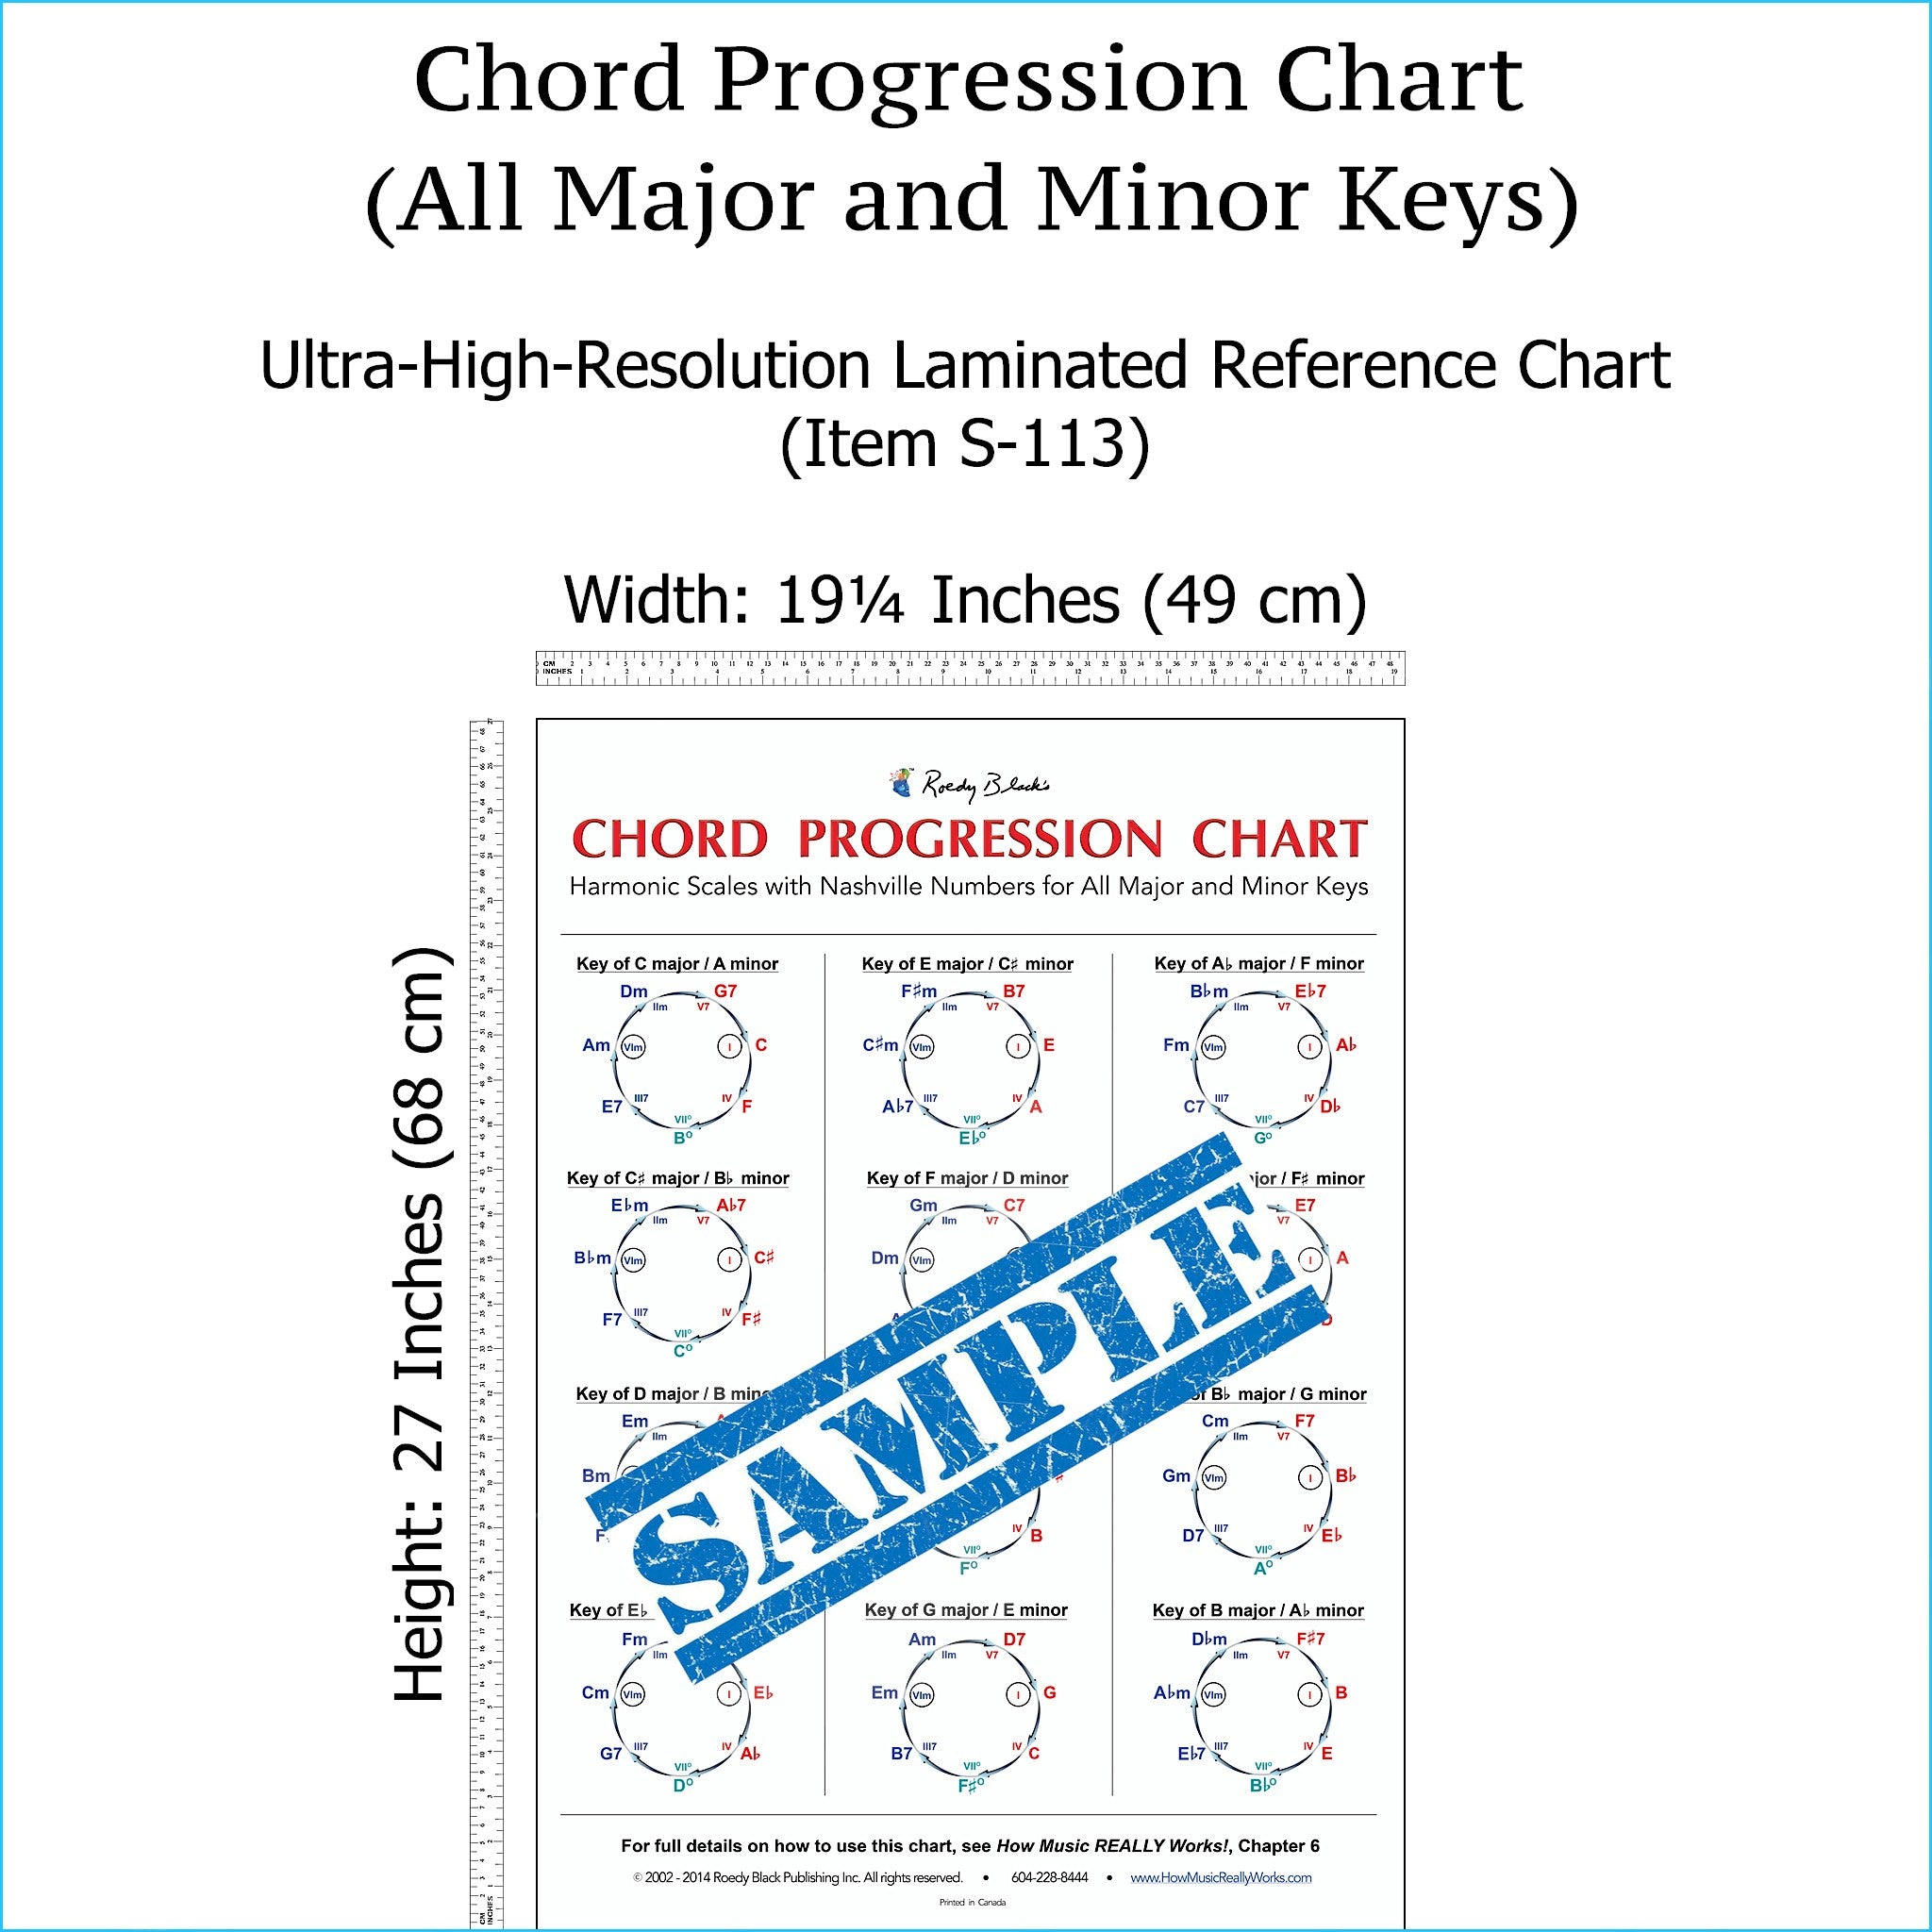 Full view of chord progression chart.